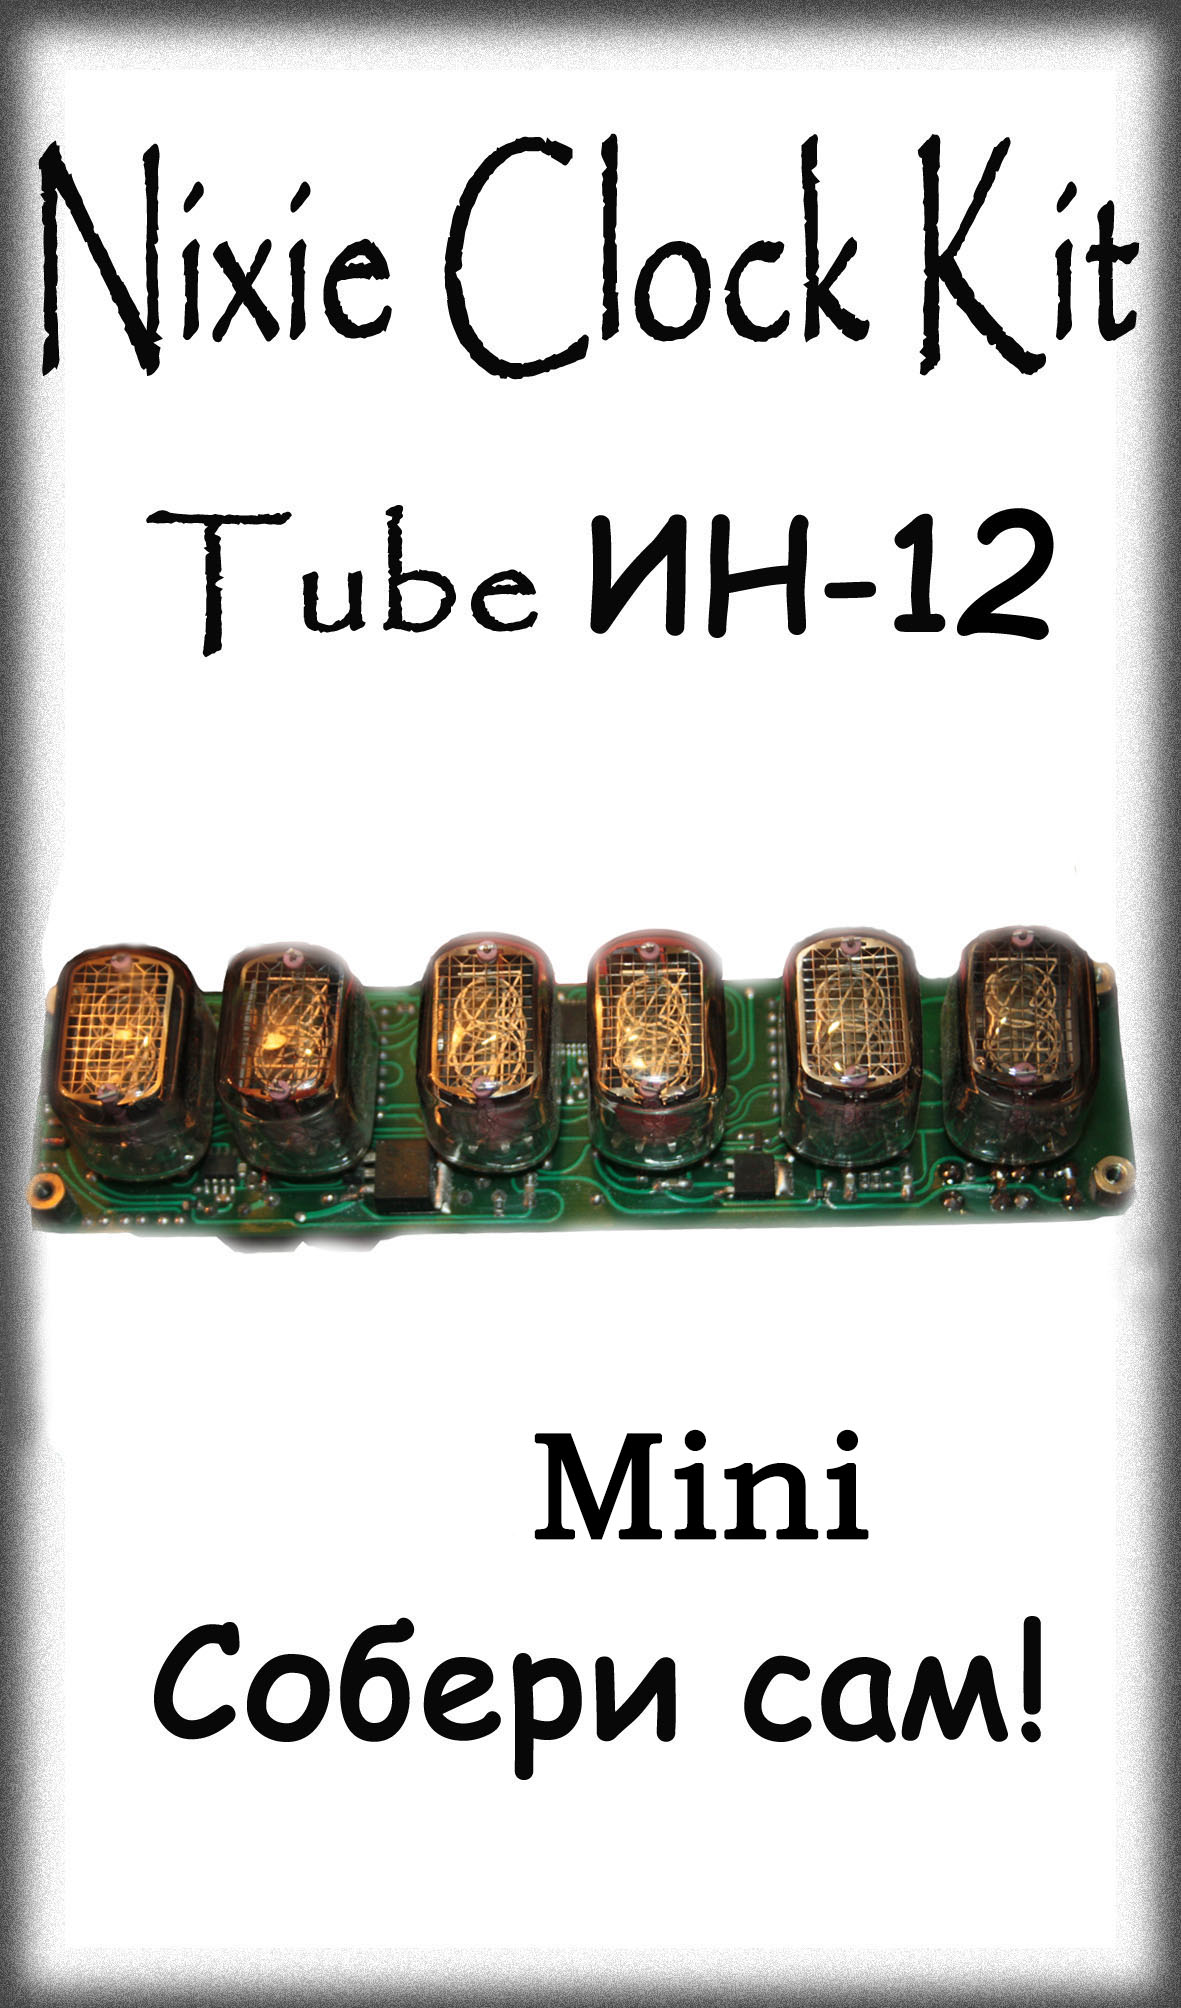 Nixie Clock Kit IN12 6 -Tube Mini